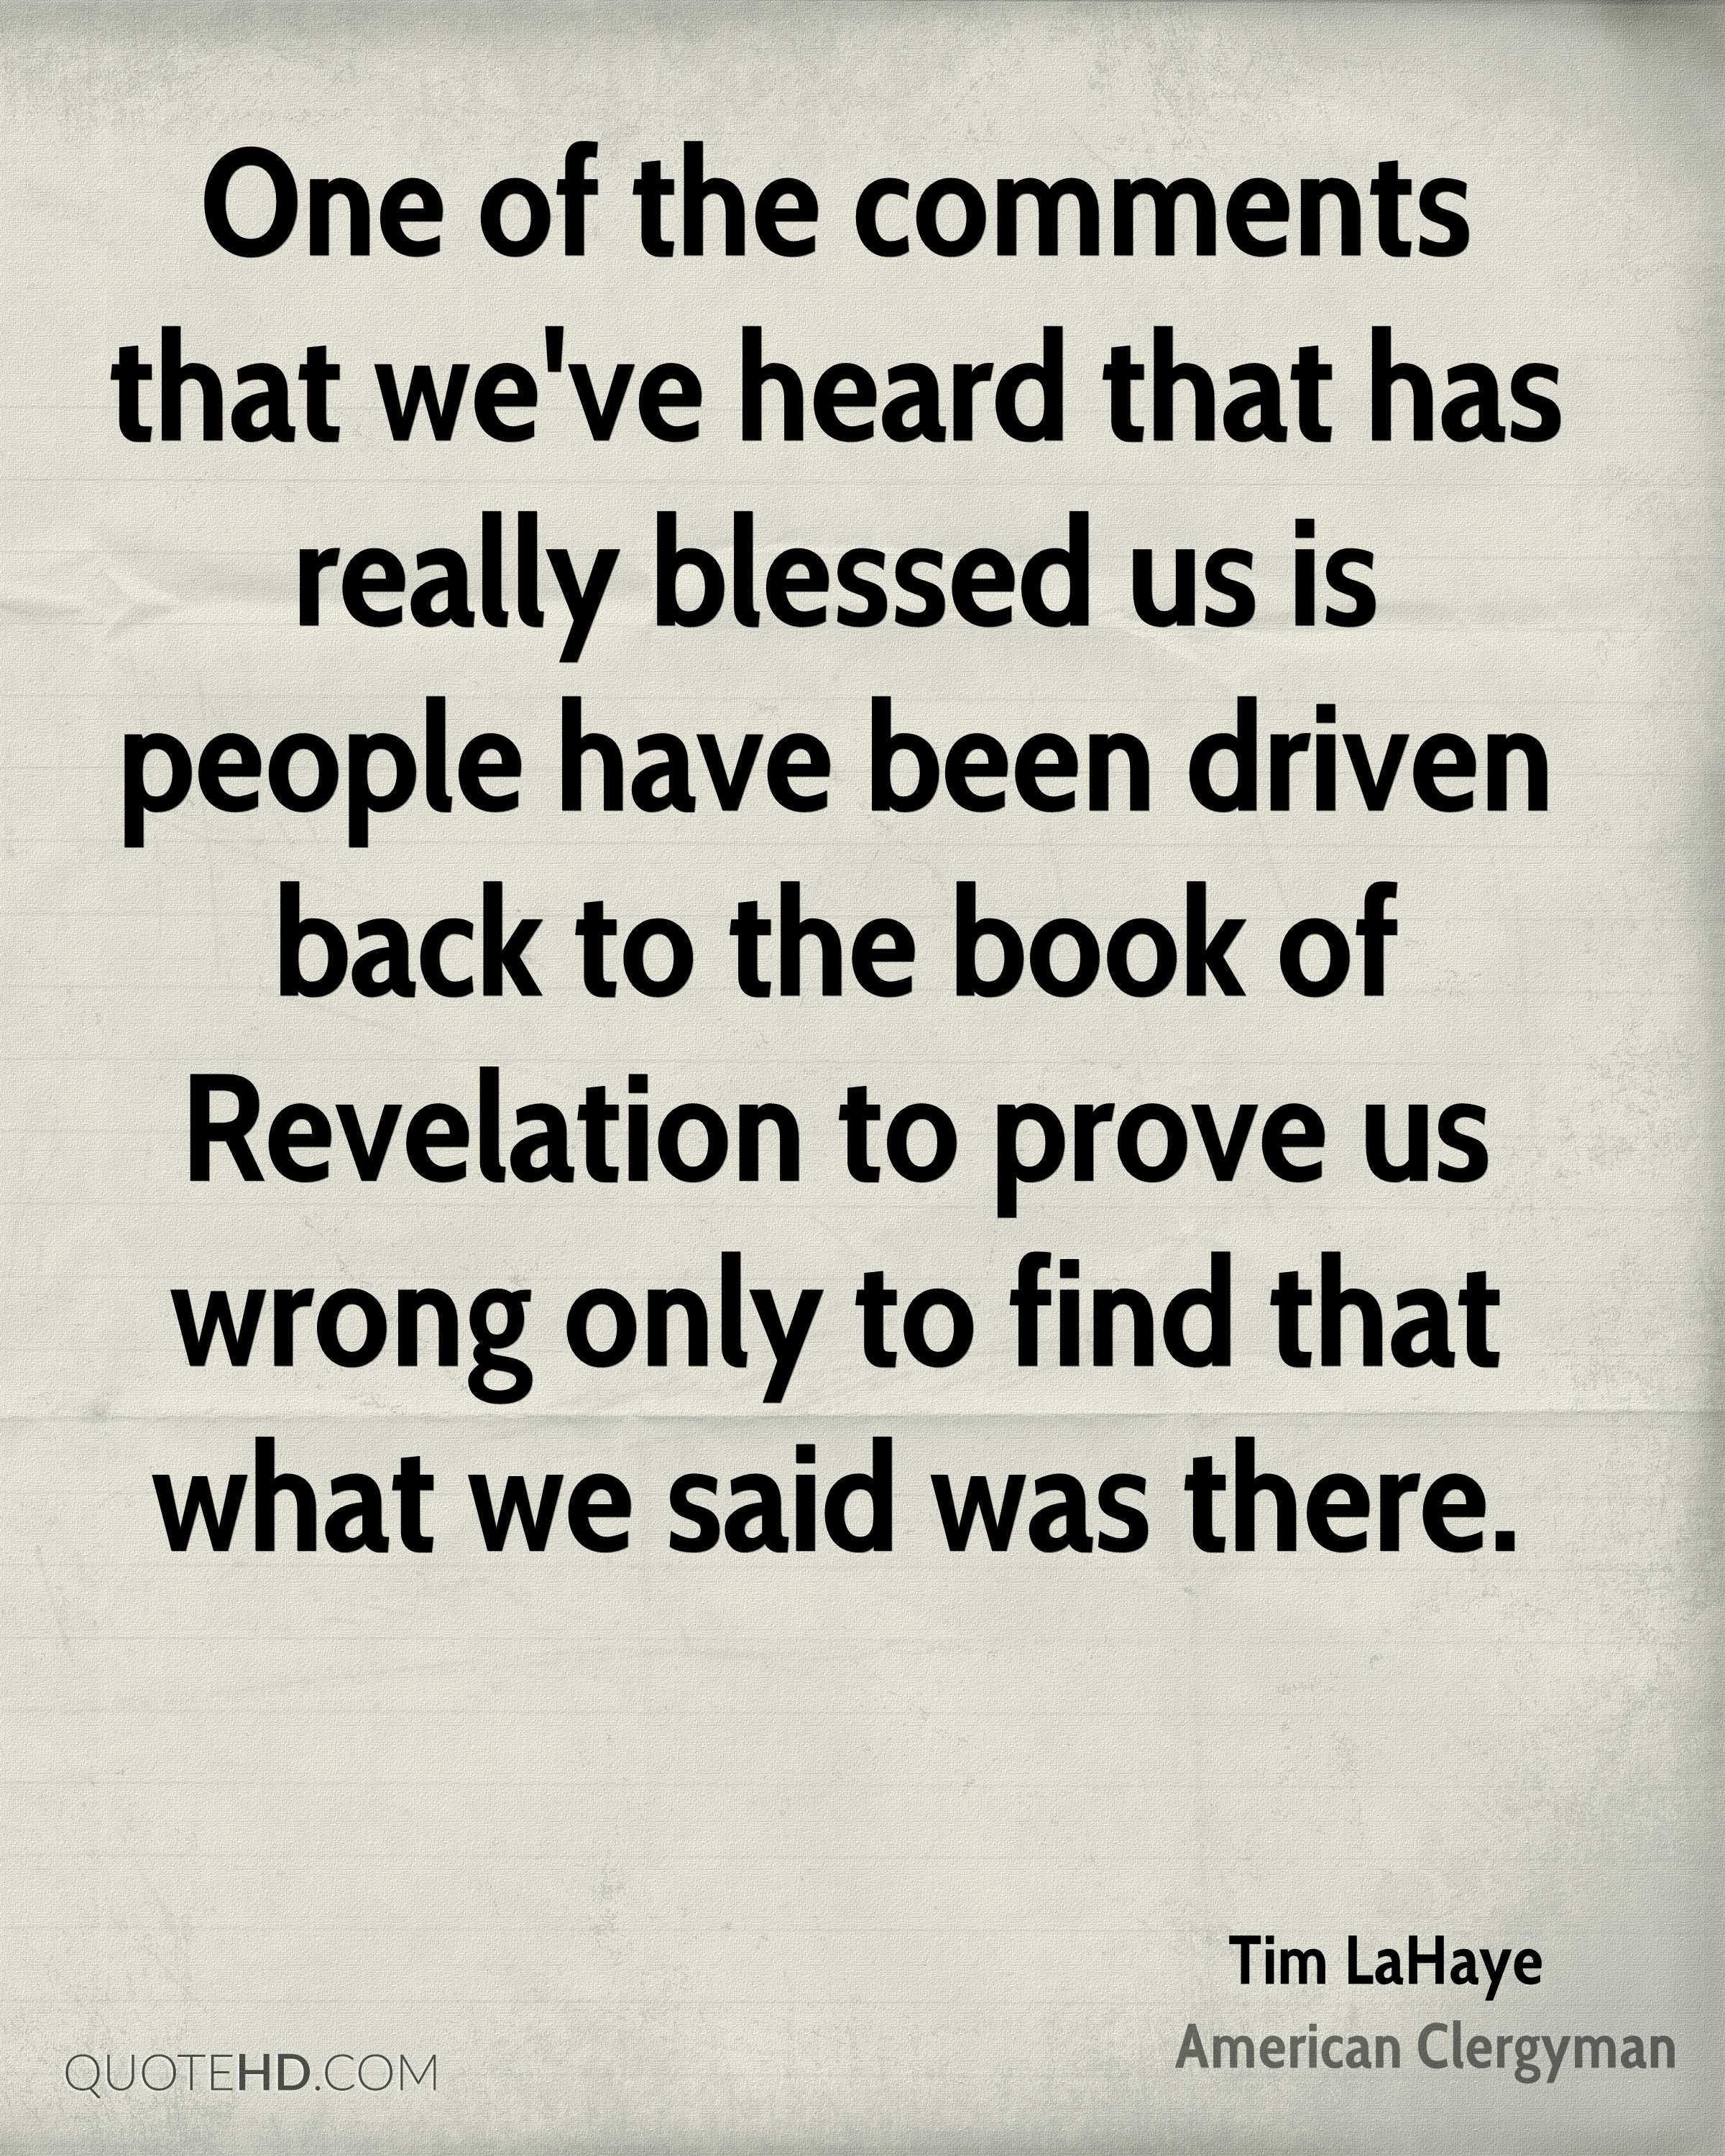 One of the comments that we've heard that has really blessed us is people have been driven back to the book of Revelation to prove us wrong only to find that what we said was there.